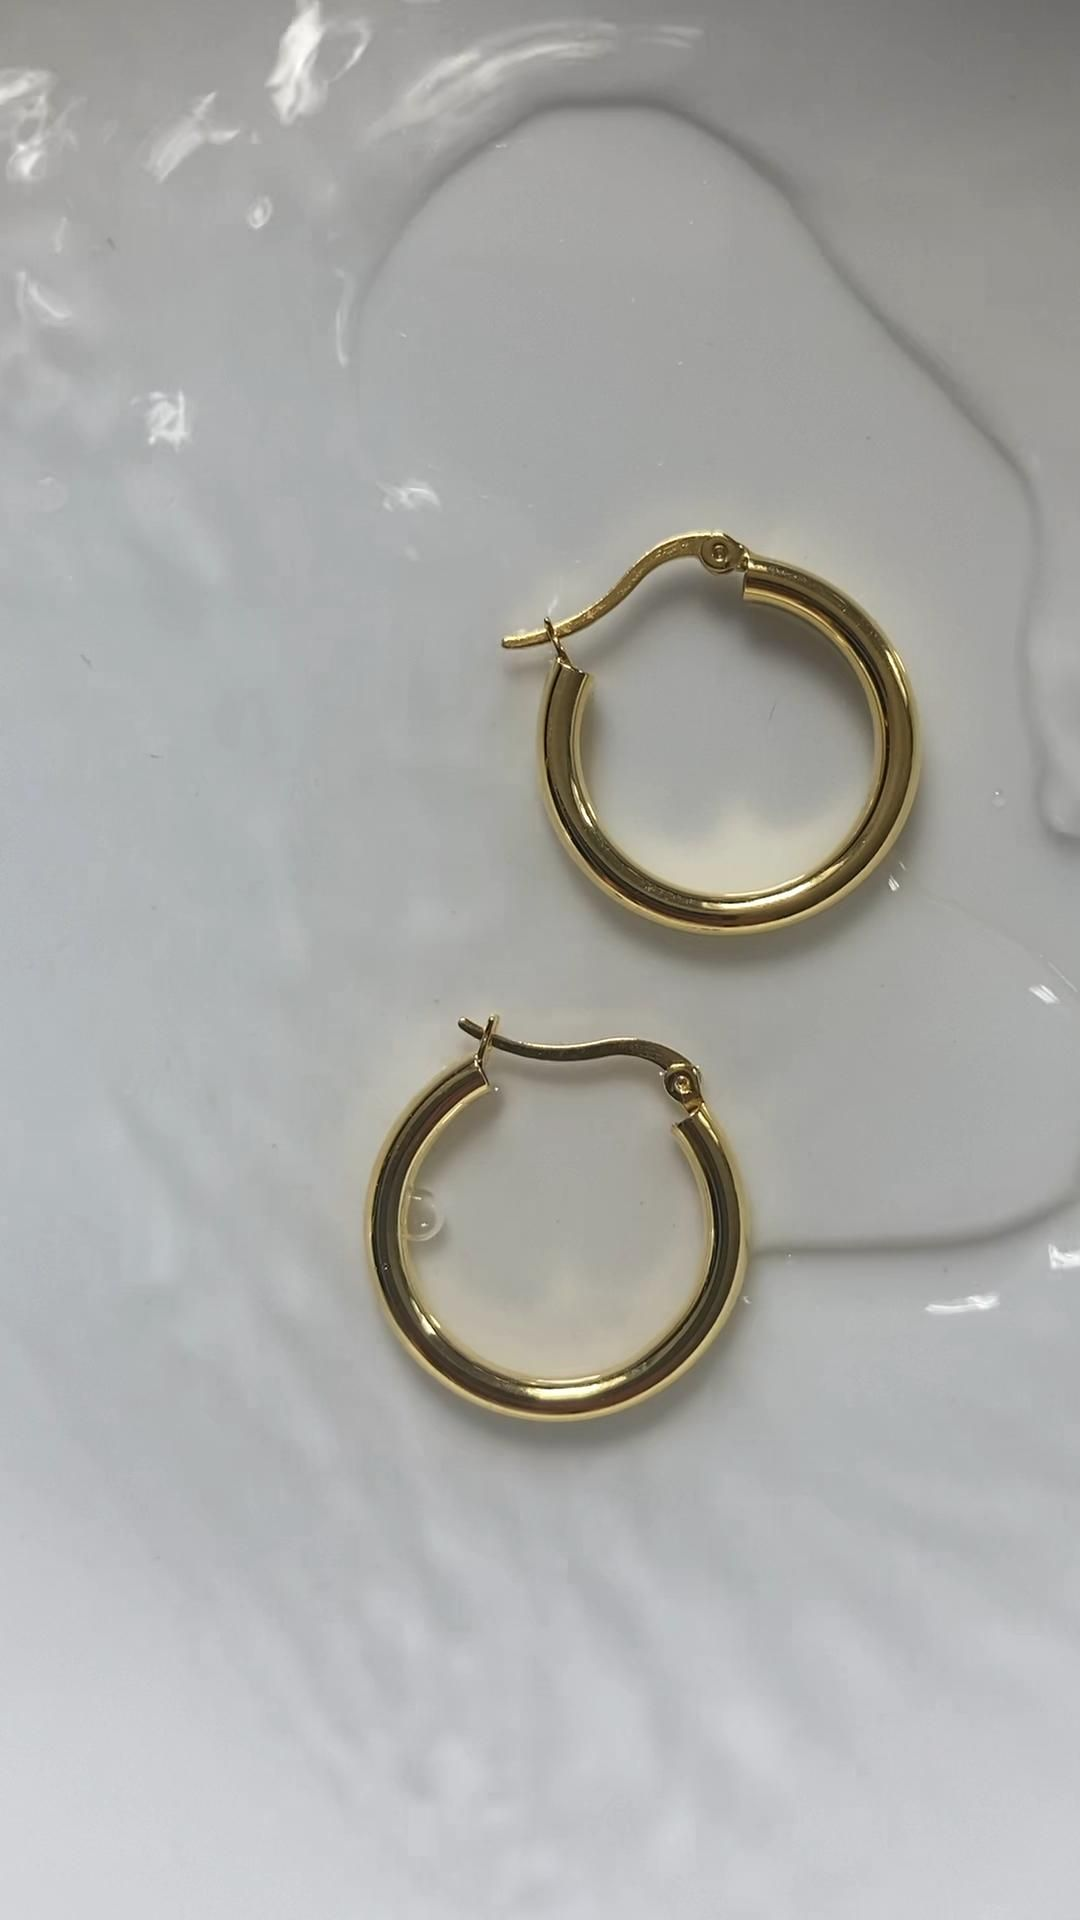 About November | Rae 22mm Sterling Silver Gold Hoop Earrings